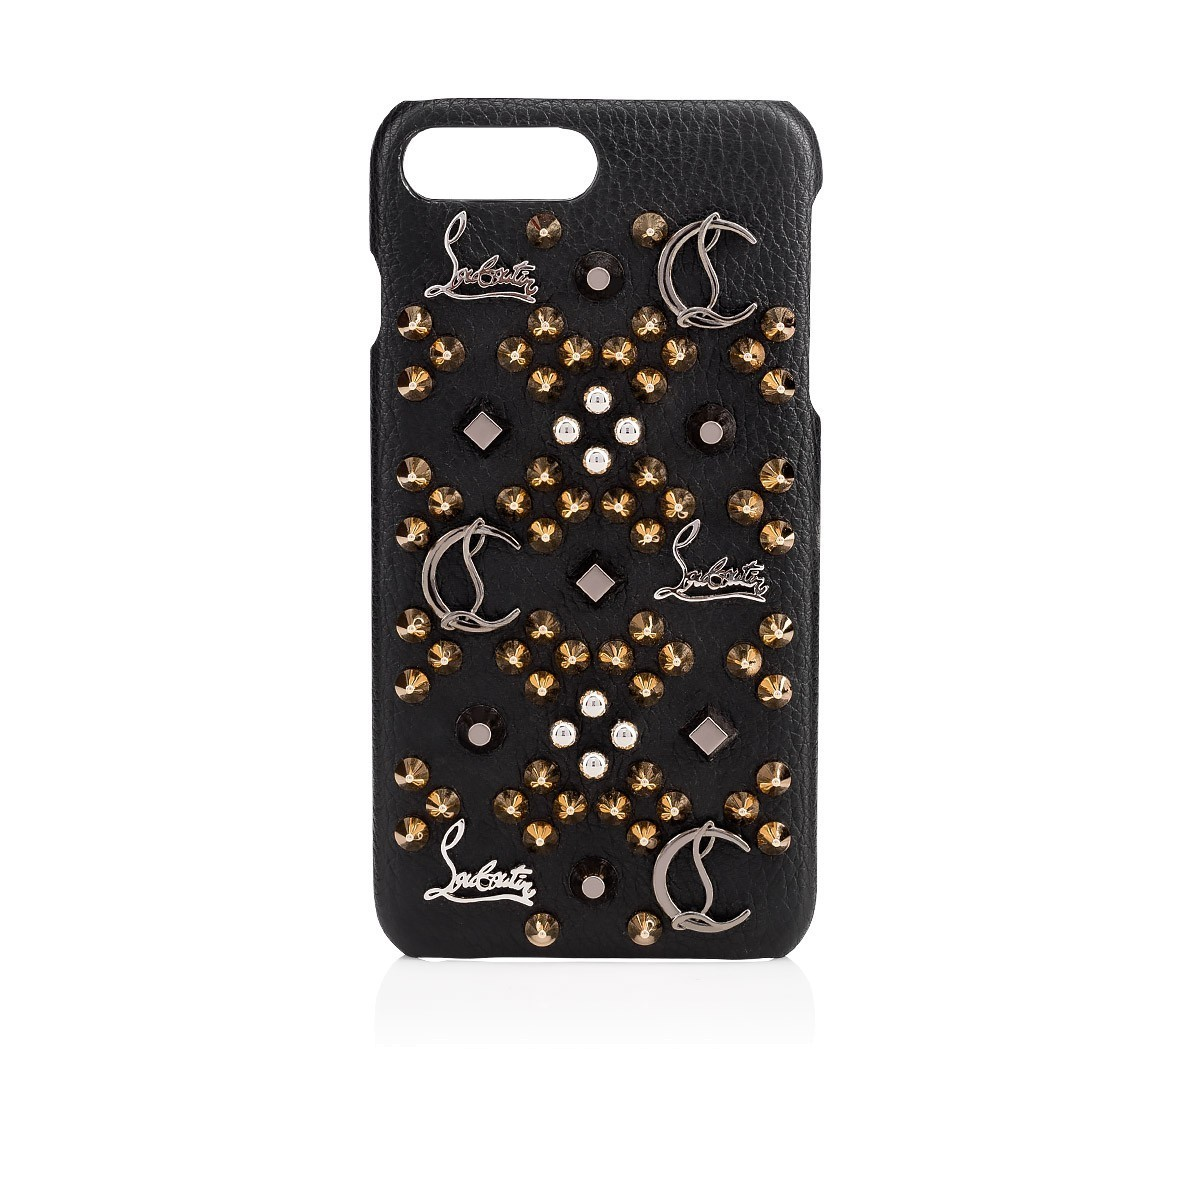 【Christian Louboutin】新作★Loubiphone Case Iphone 7/8 Plus